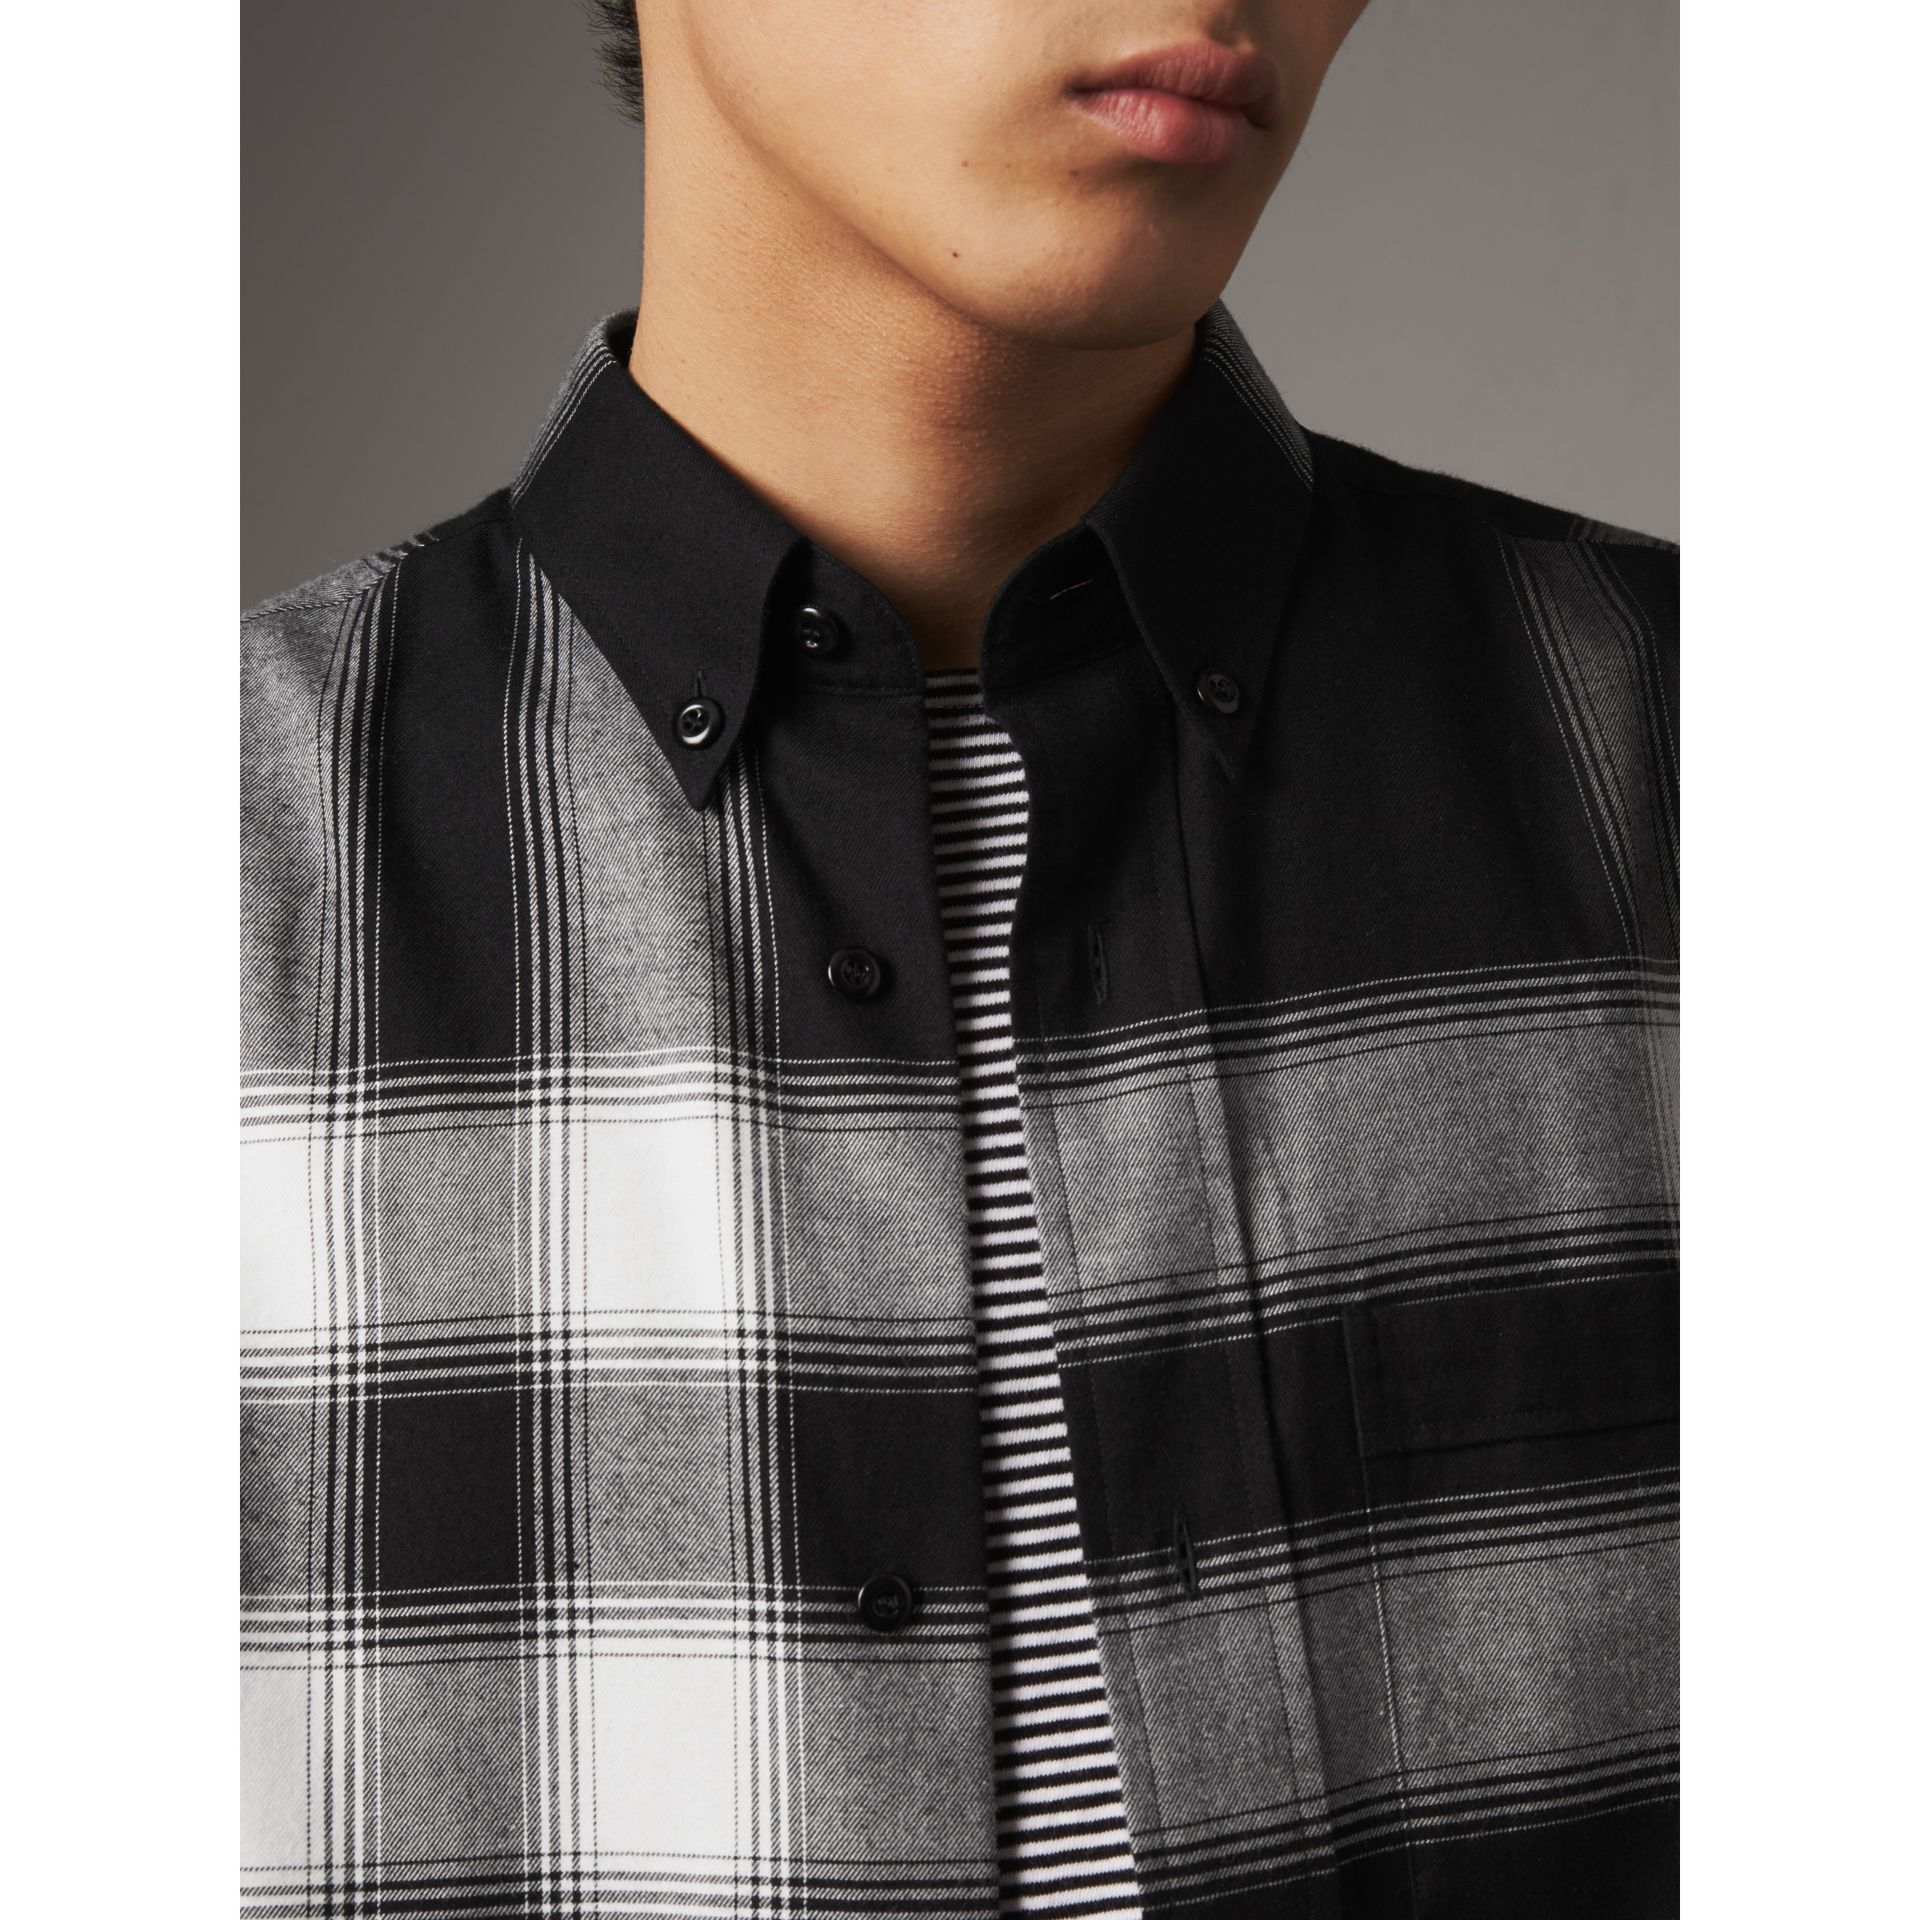 Ombré Check Cotton Flannel Shirt in Black - Men | Burberry - gallery image 2